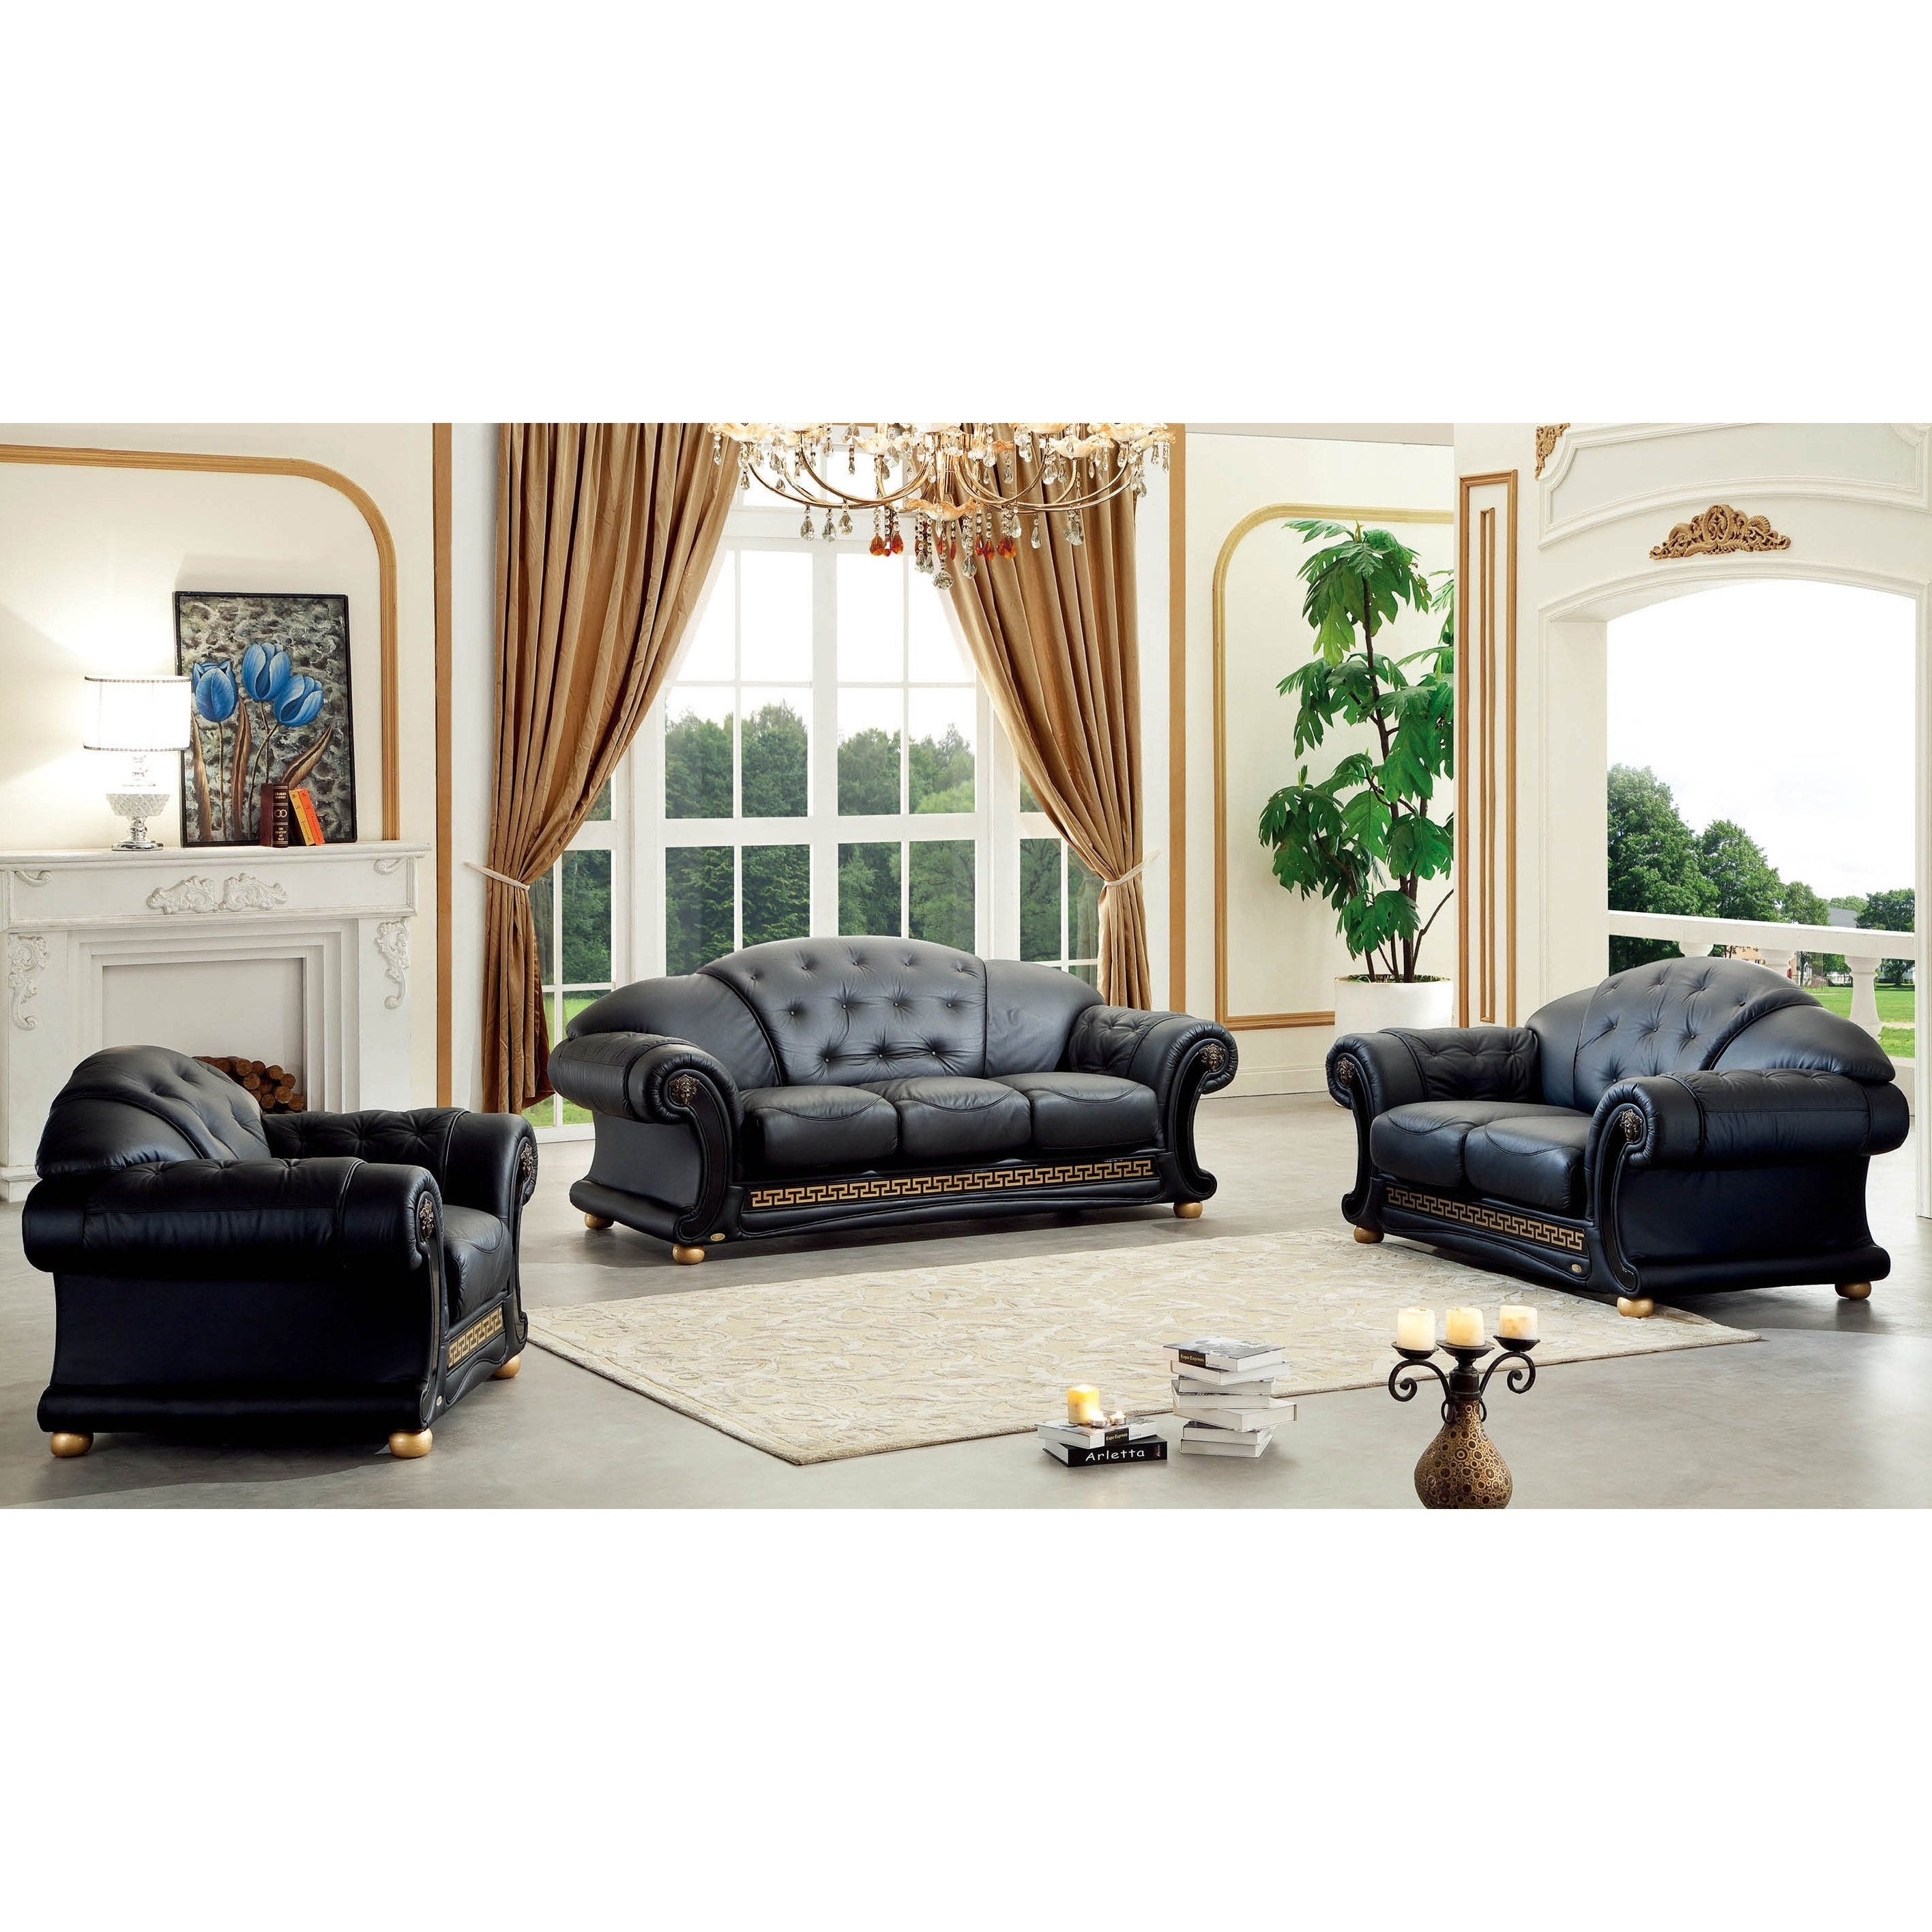 Shop luca home black classic contemporary sofa love seat and chair set free shipping today overstock com 11177912